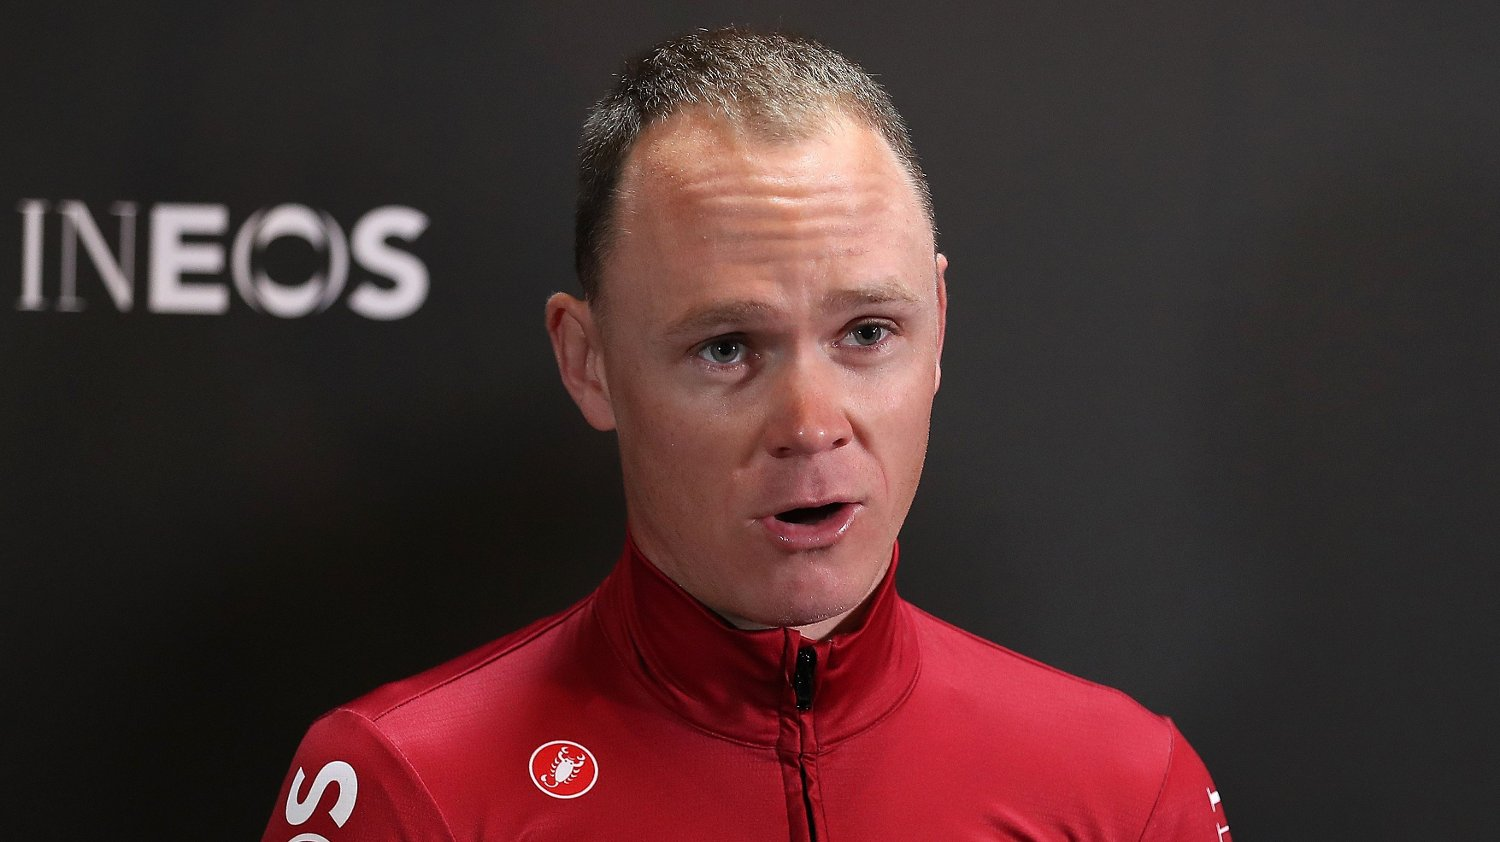 File photo dated 01-05-2019 of Chris Froome during a press conference to launch Team INEOS at The Fountaine Free in Linton, Yorkshire.